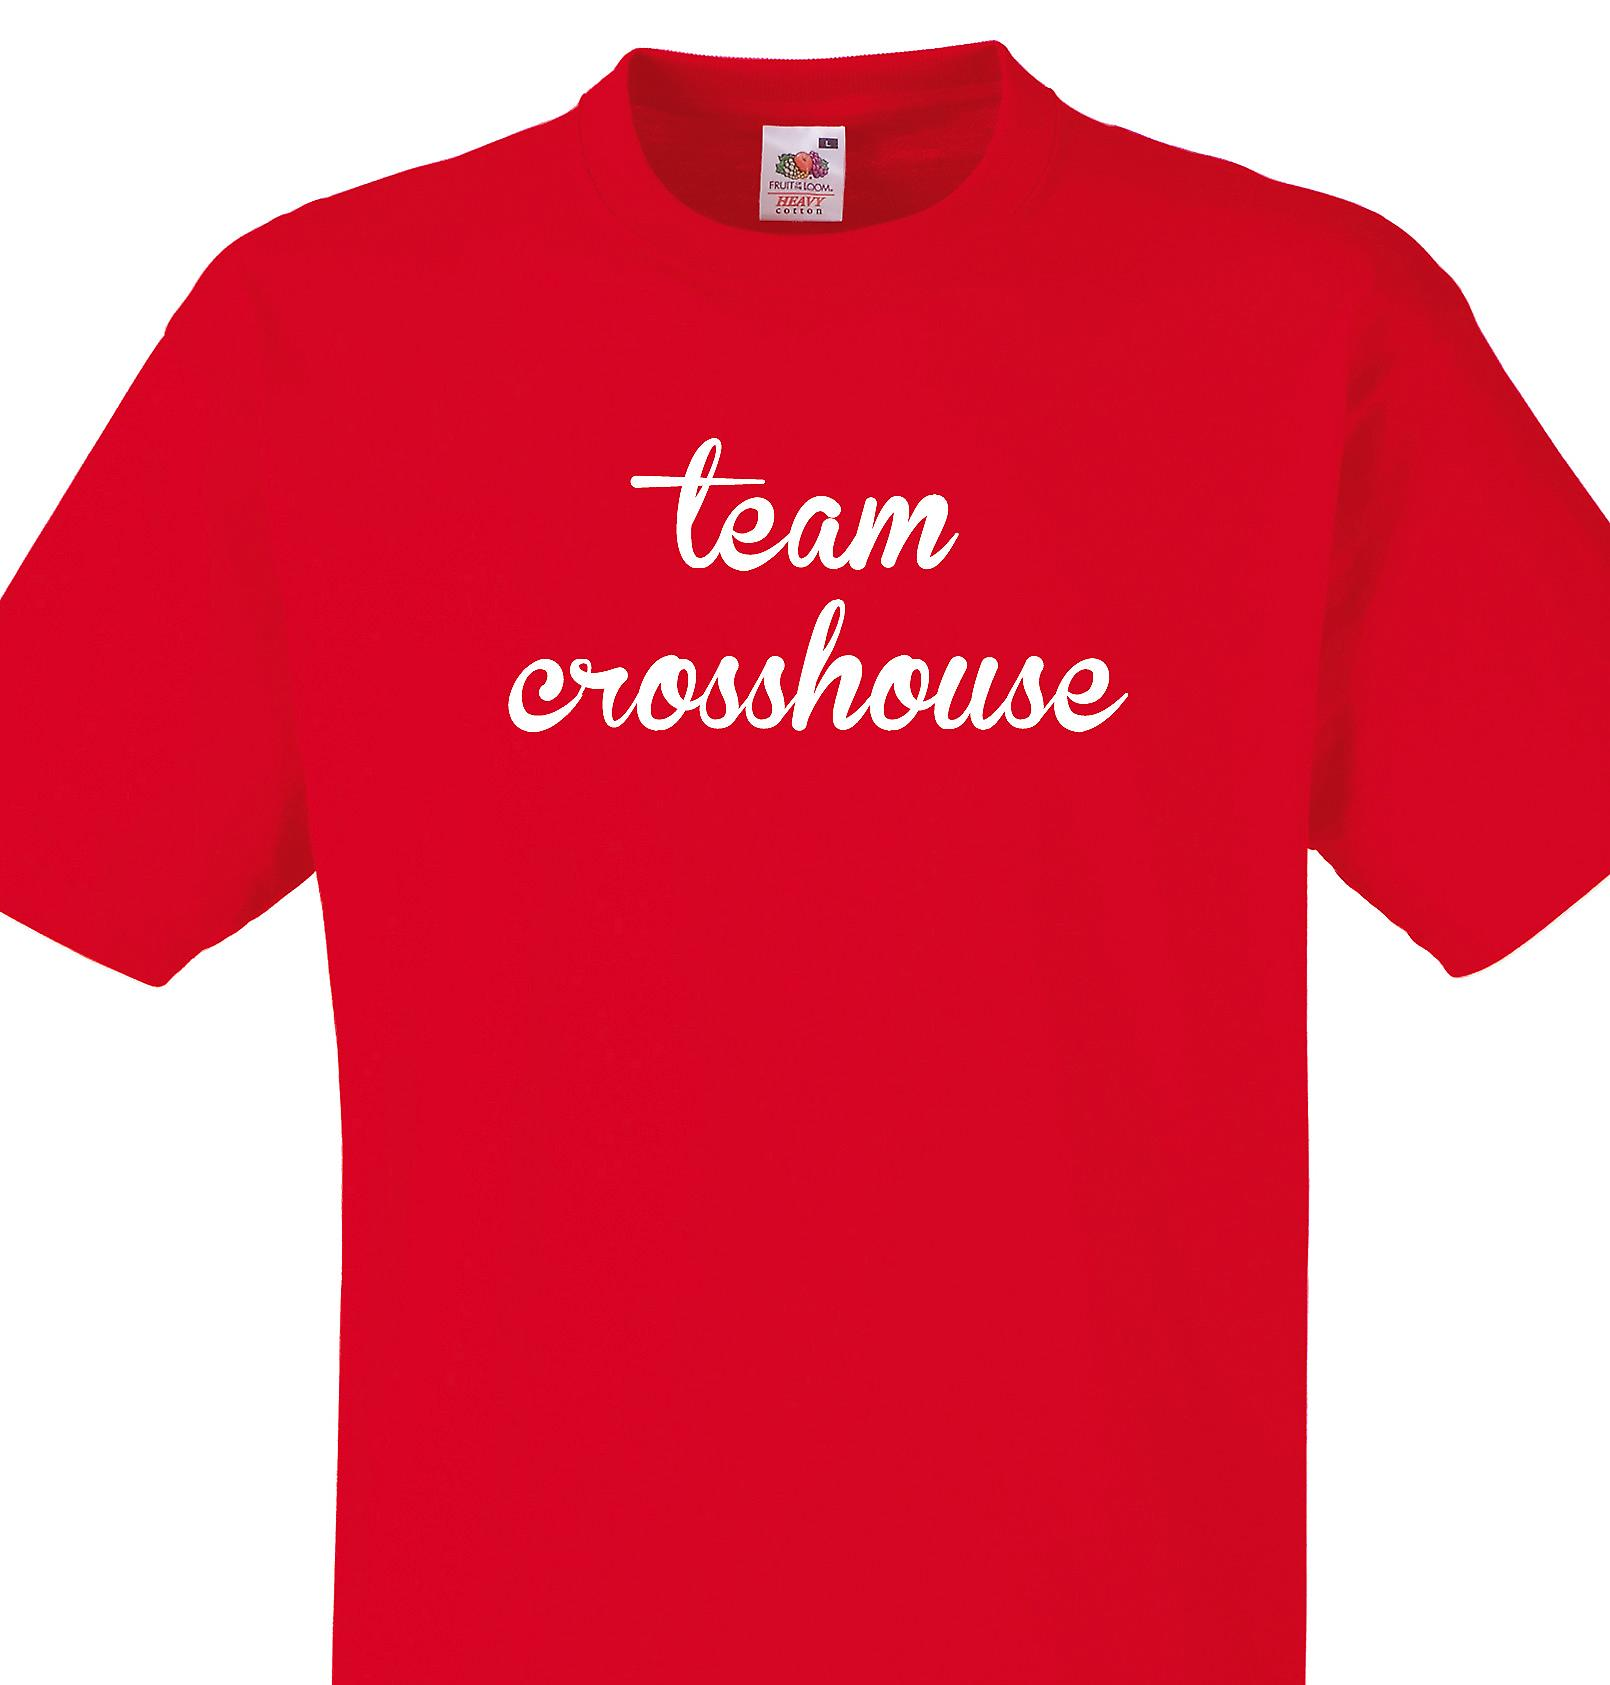 Team Crosshouse Red T shirt